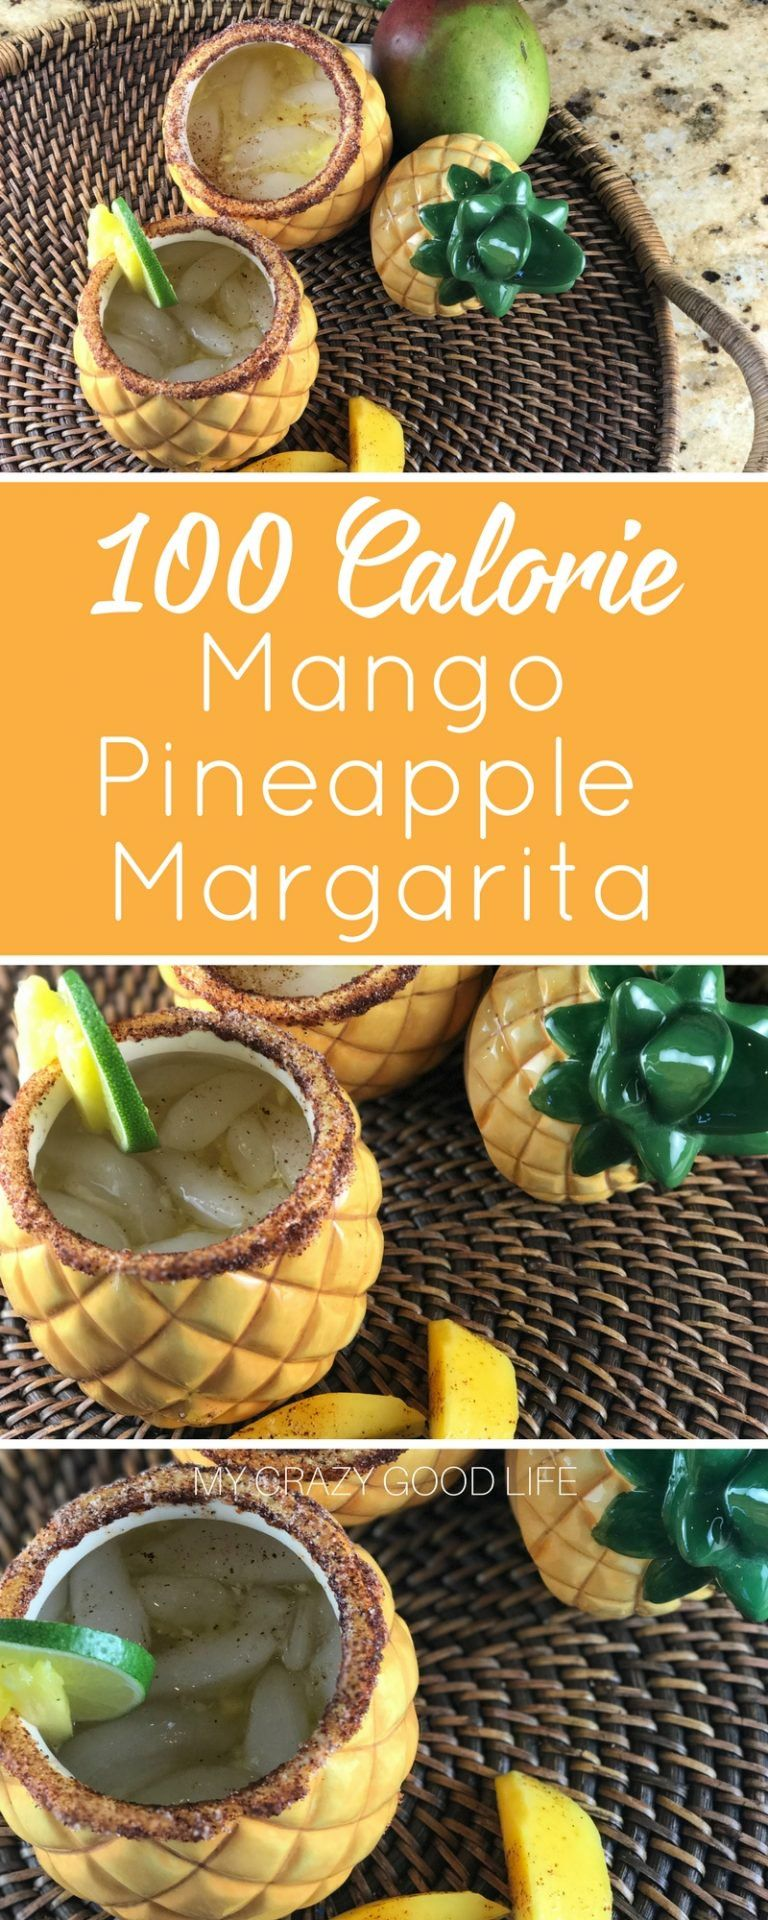 Pineapple Coconut 7UP Cocktail Recipe - A Bubbly Life